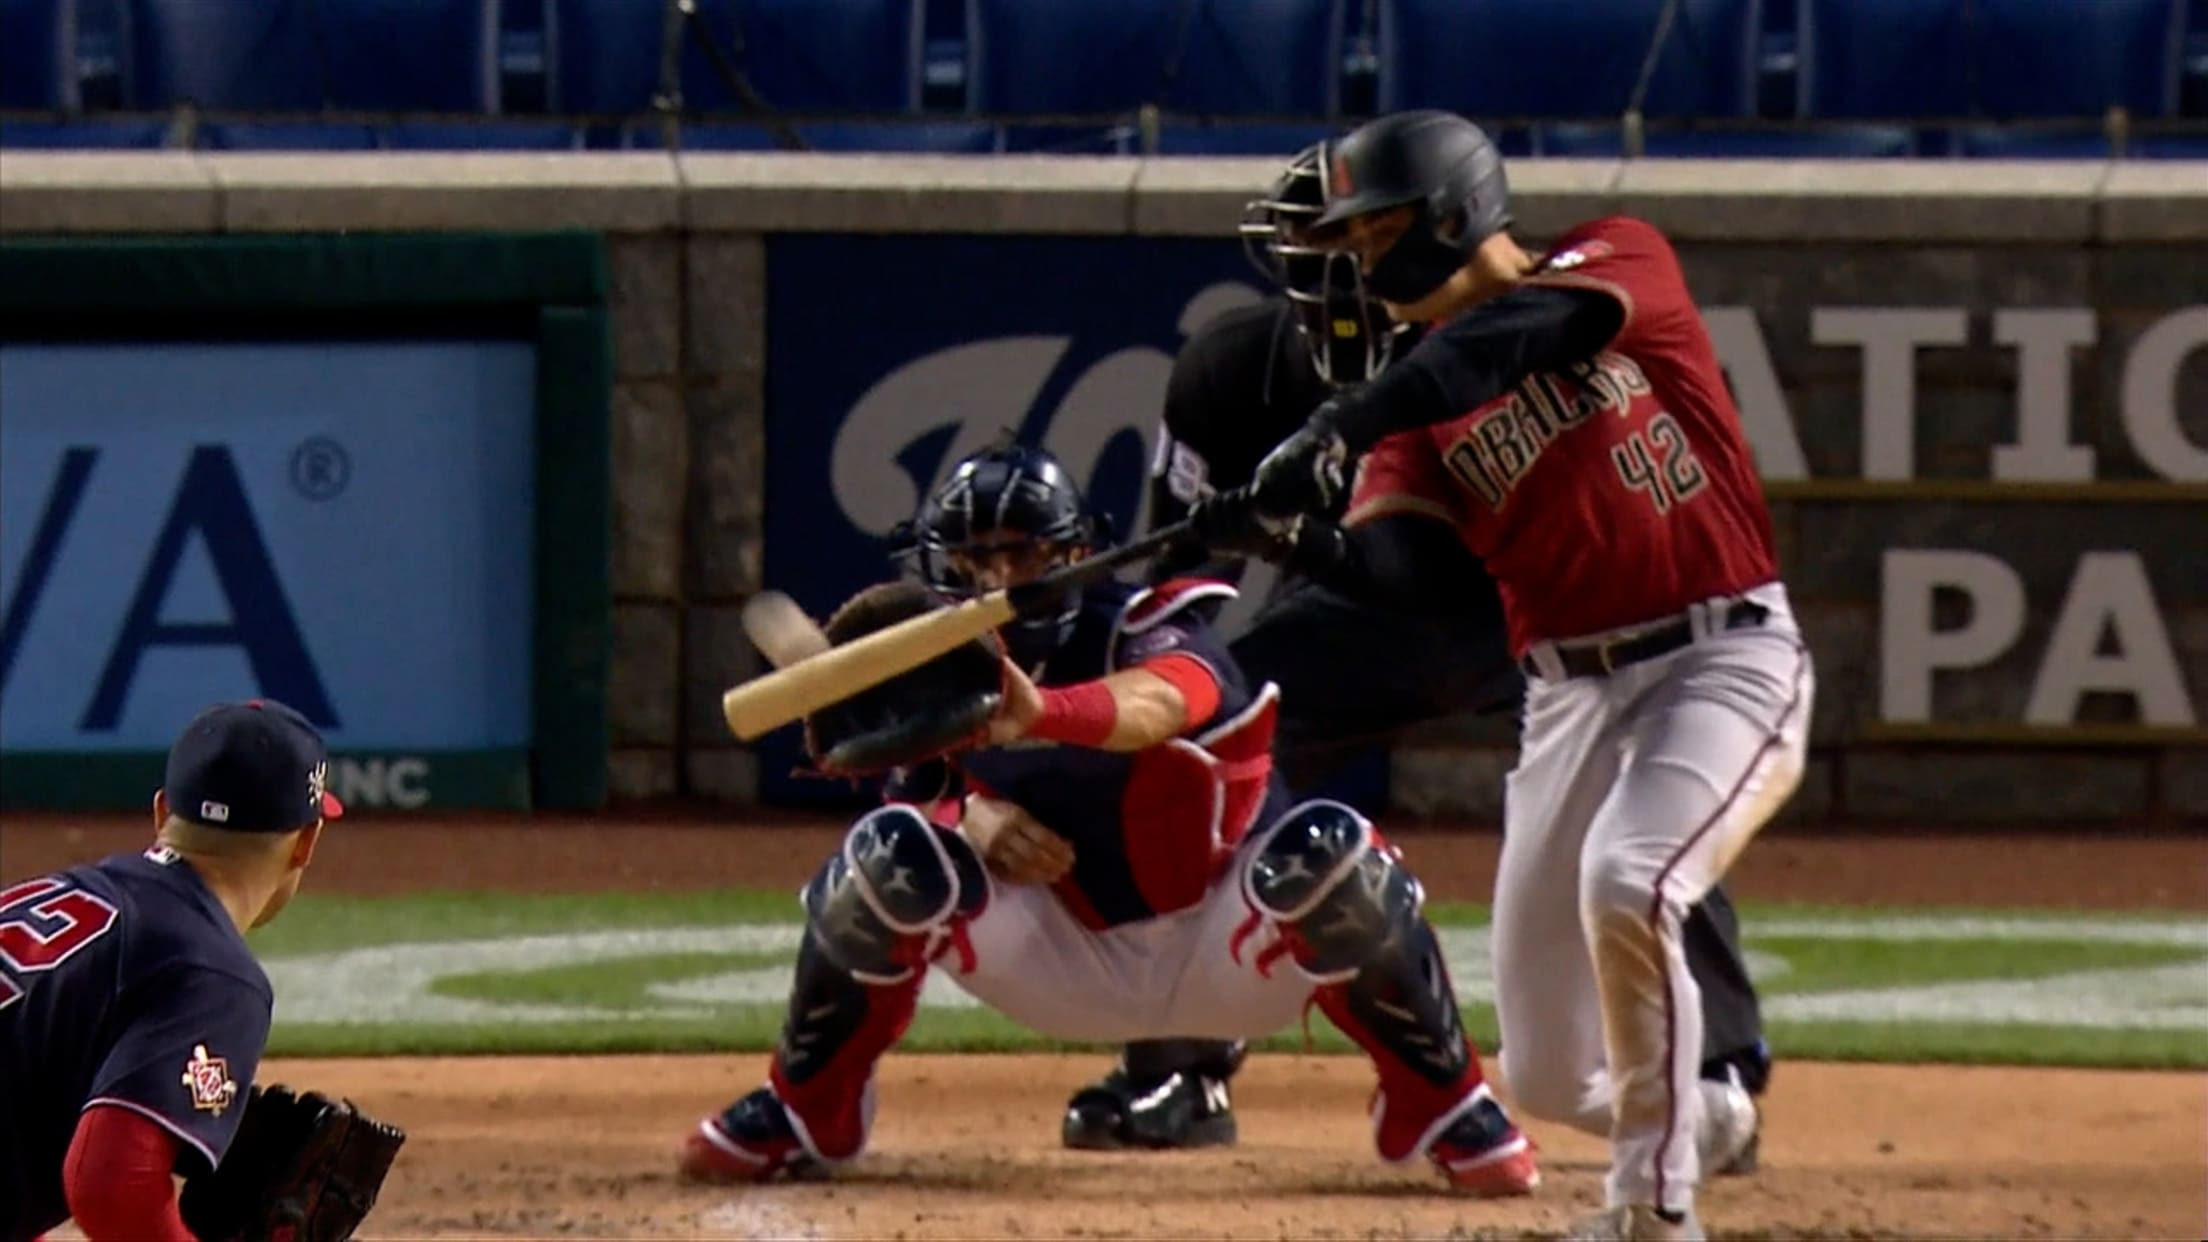 Andrew Young's grand slam